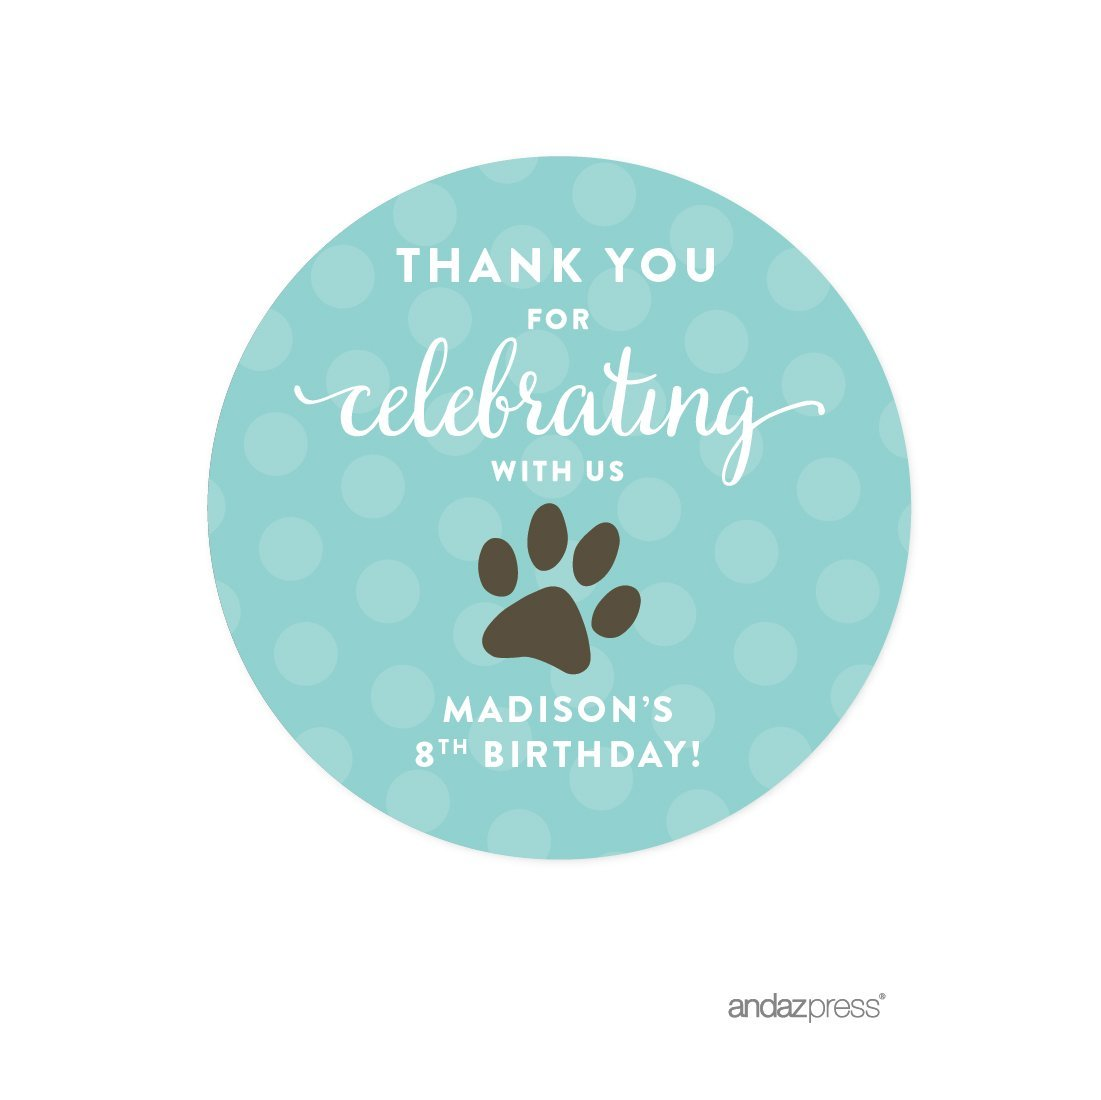 Andaz Press Personalized Birthday Round Circle Labels Stickers, Thank You for Celebrating With Us, Animal Pawprint, 40-Pack, For Gifts and Party Favors, Custom Name